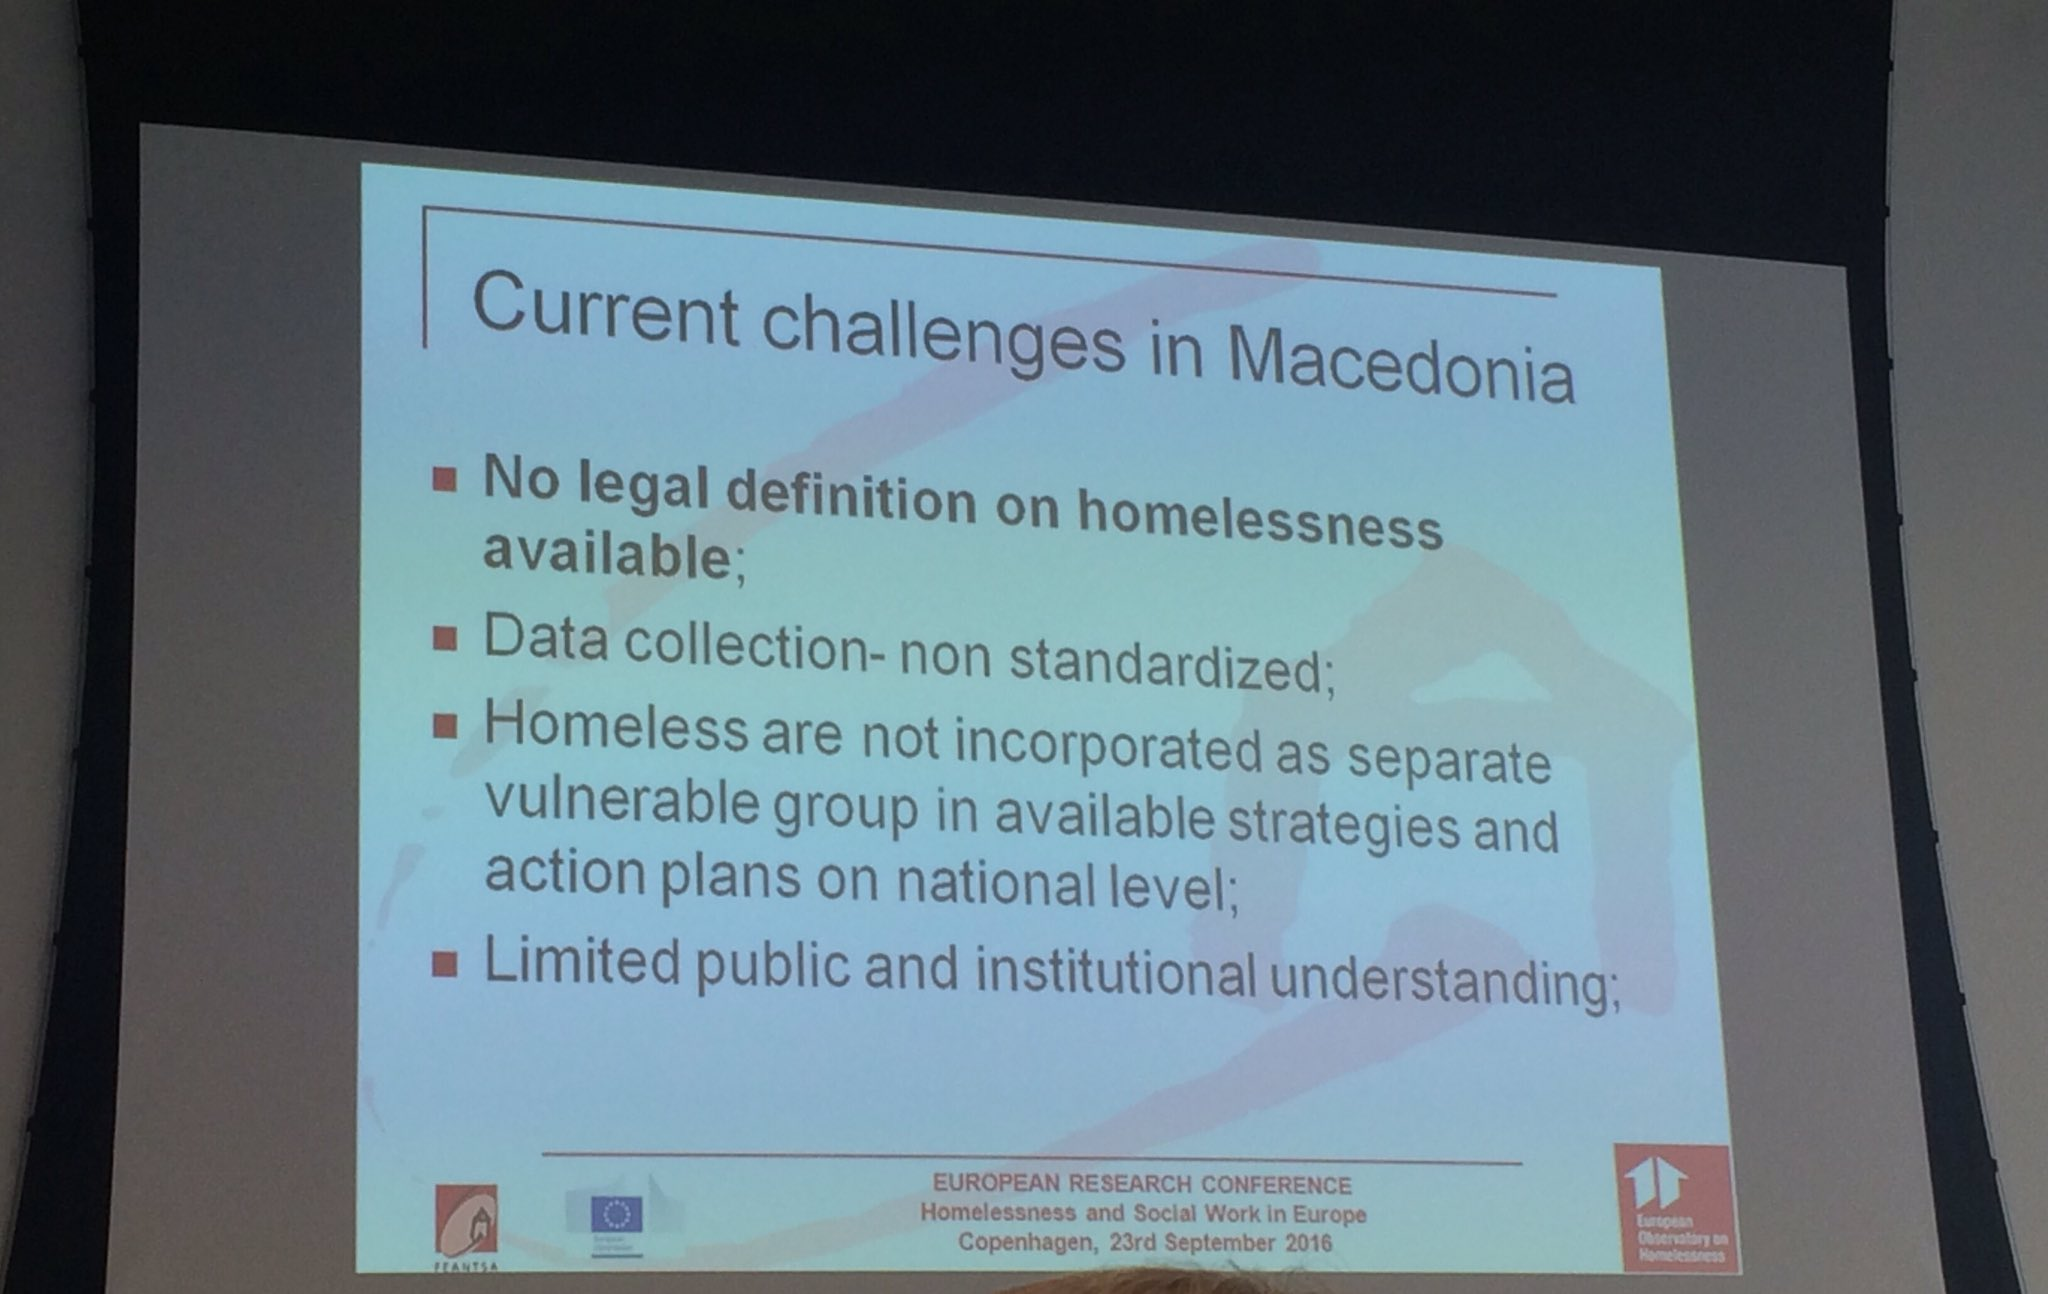 Alexsandra Iloska from Public outlines challenges in tackling homelessness in Macedonia #eoh2016 https://t.co/L5PpdKi48U